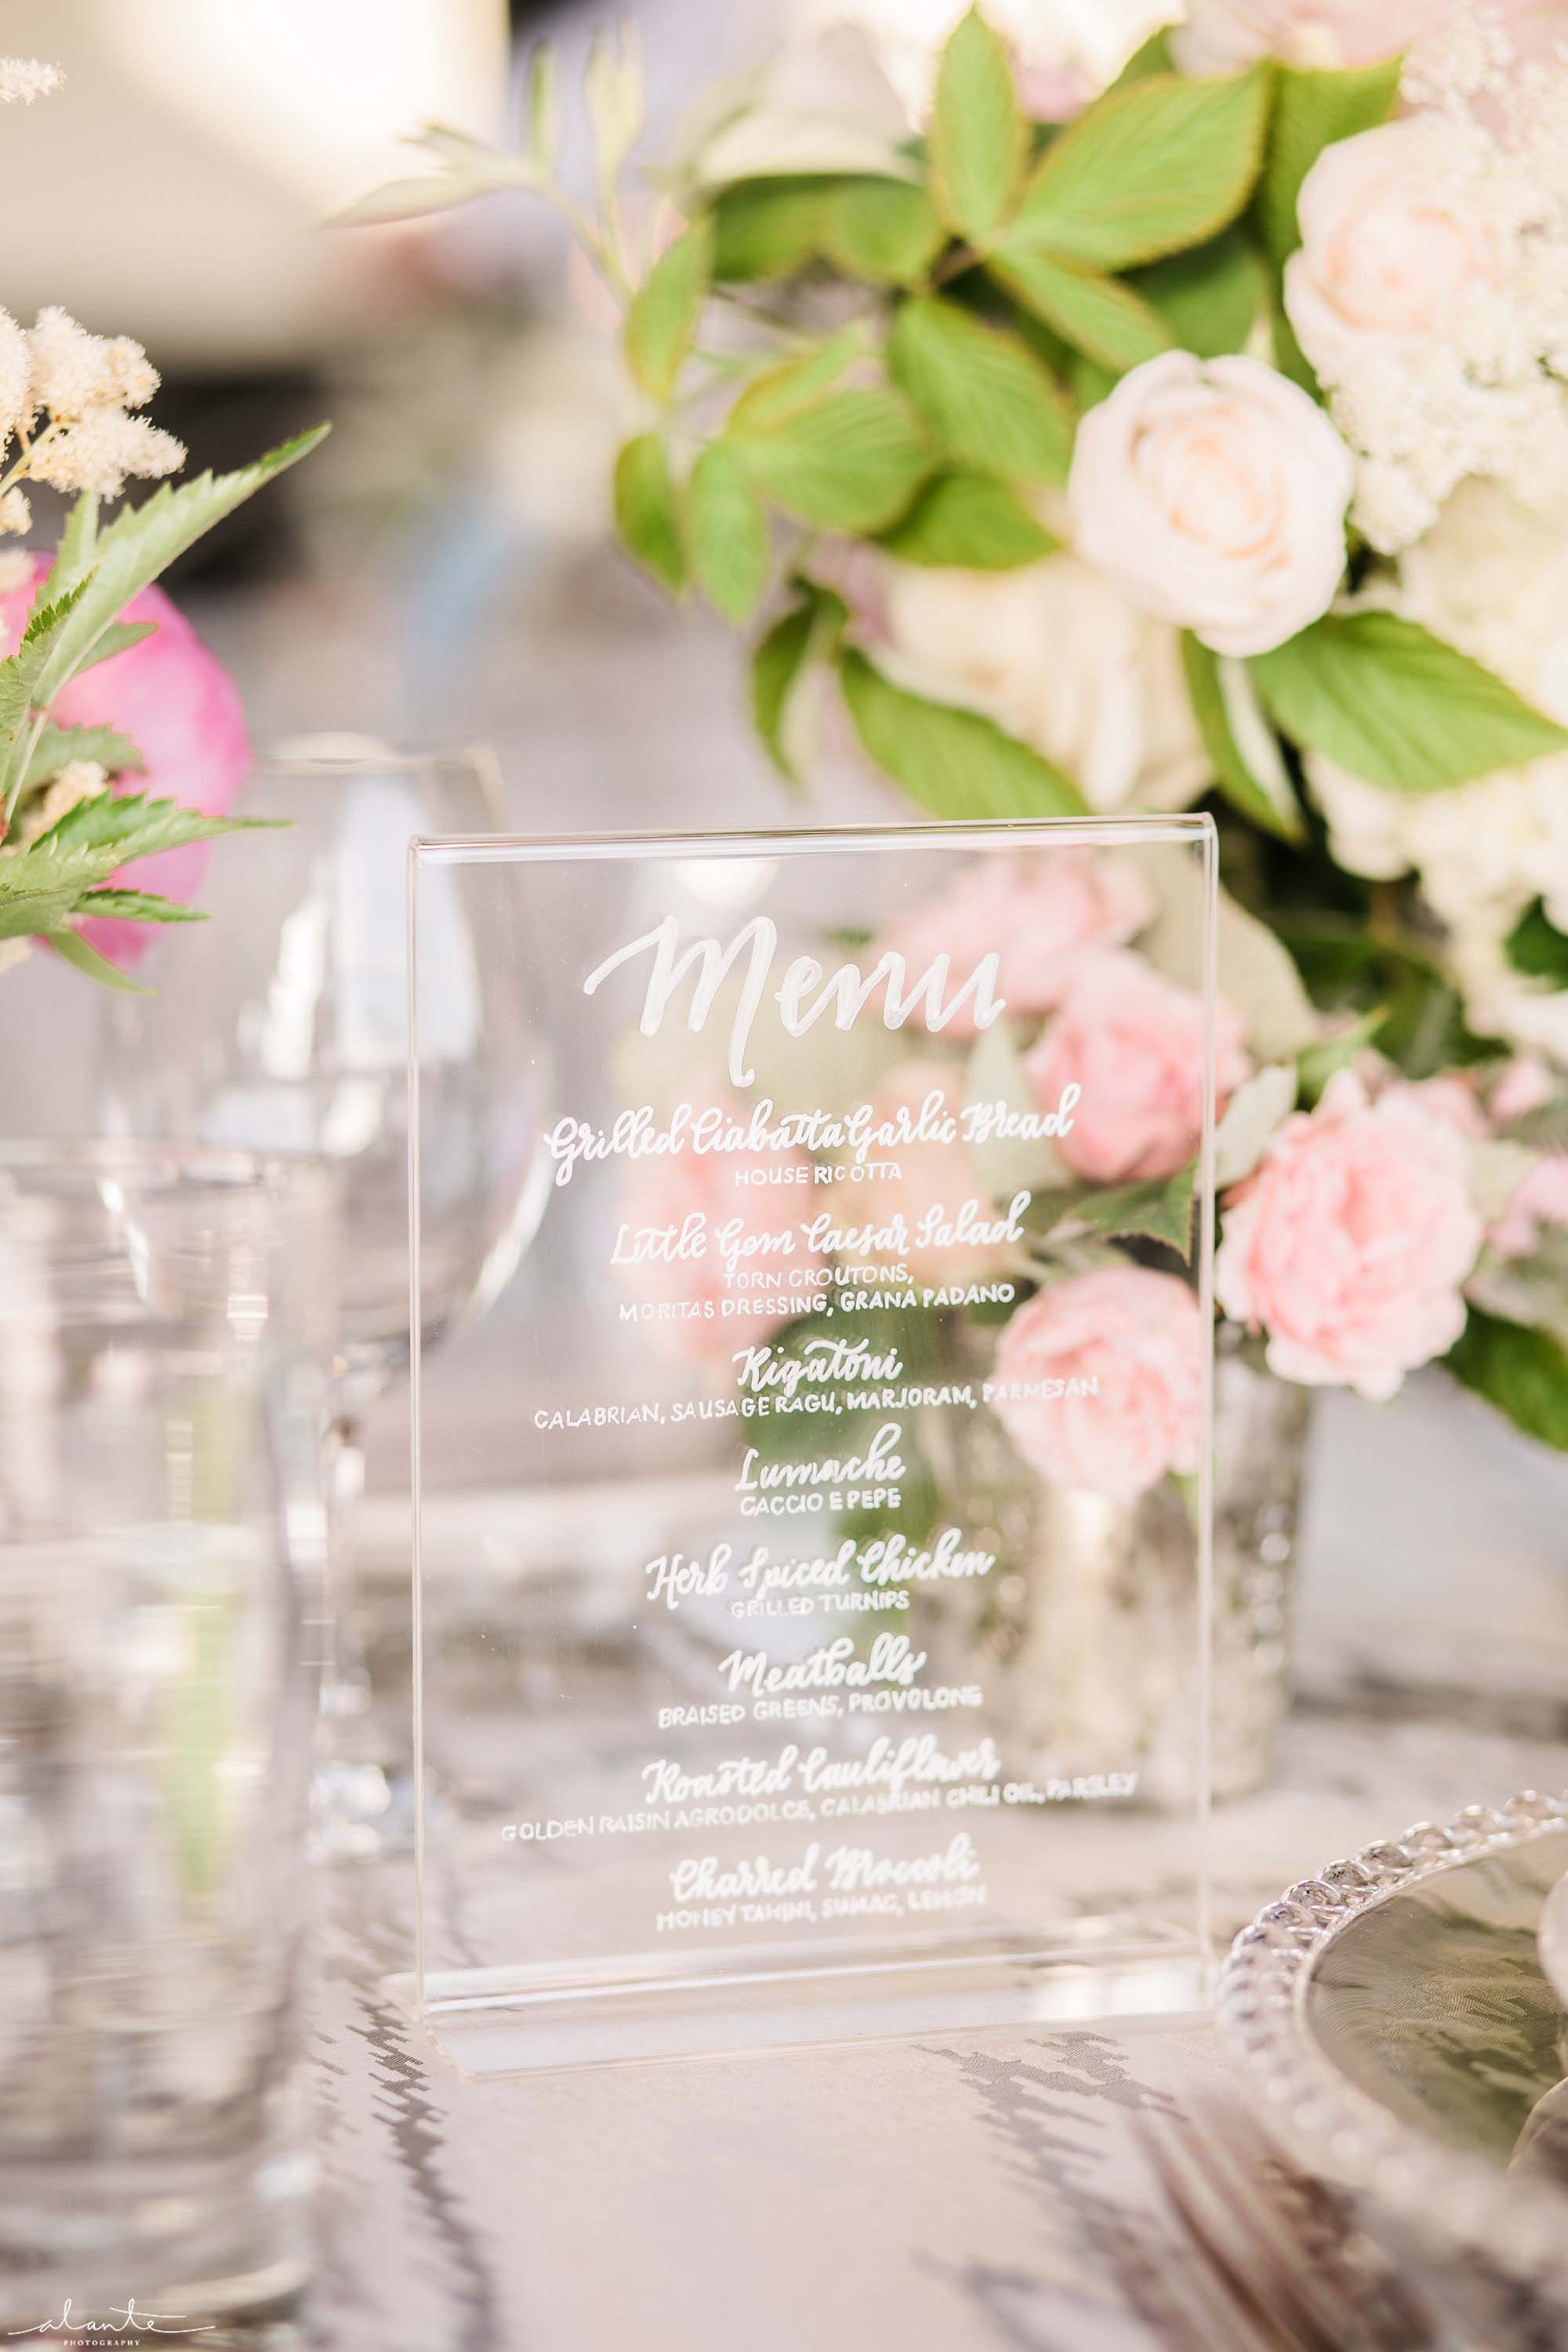 Lucite menu card at wedding reception - Olympic Rooftop Pavilion wedding with pink peonies by Flora Nova Design Seattle